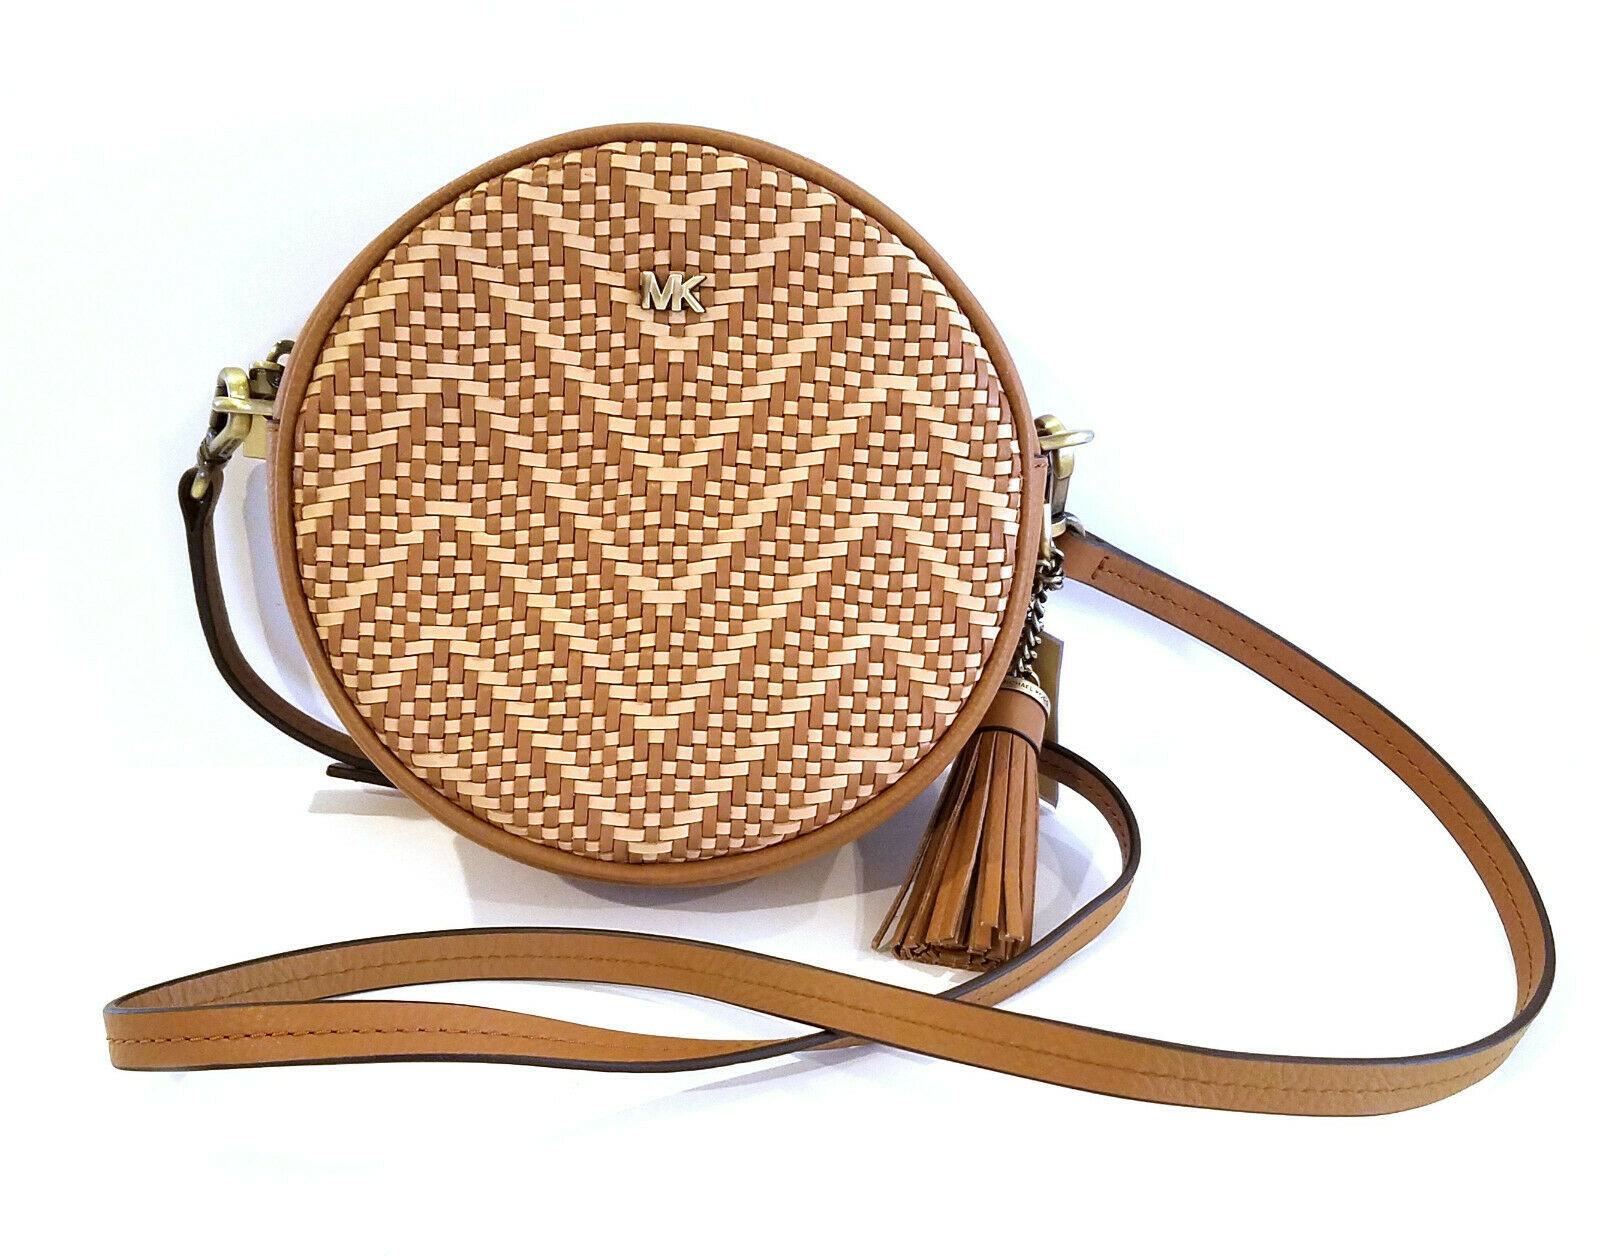 eeb22757106947 S l1600. S l1600. Previous. Michael Kors Canteen Chevron Woven Leather  Circle Crossbody Handbag NEW